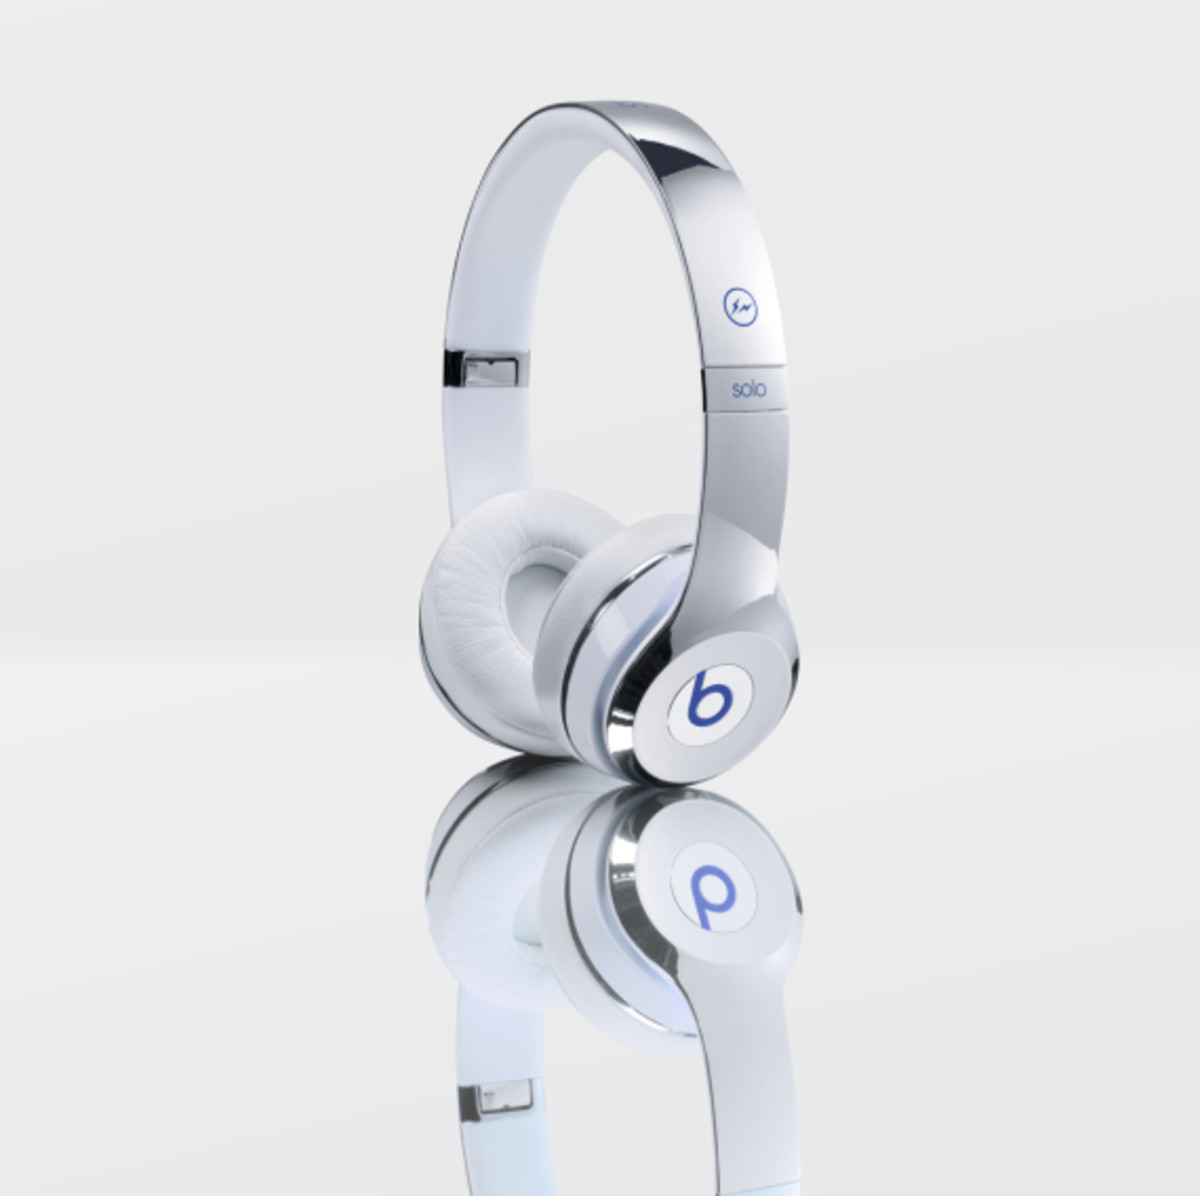 fragment-design-beats-by-dre-collection-04